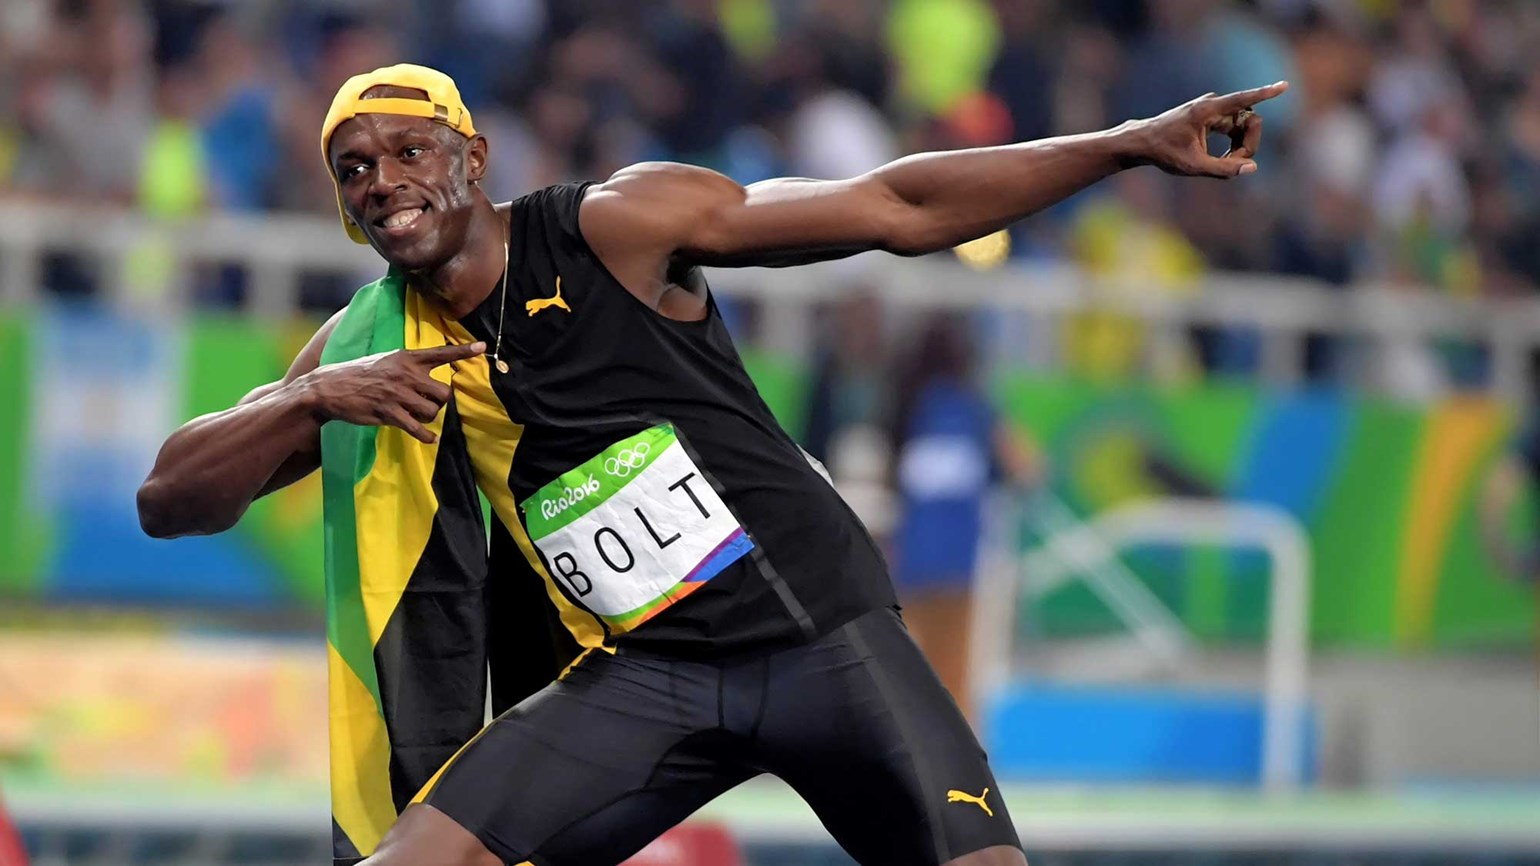 U.N. taps Usain Bolt as ambassador for sustainable tourism confab in Jamaica